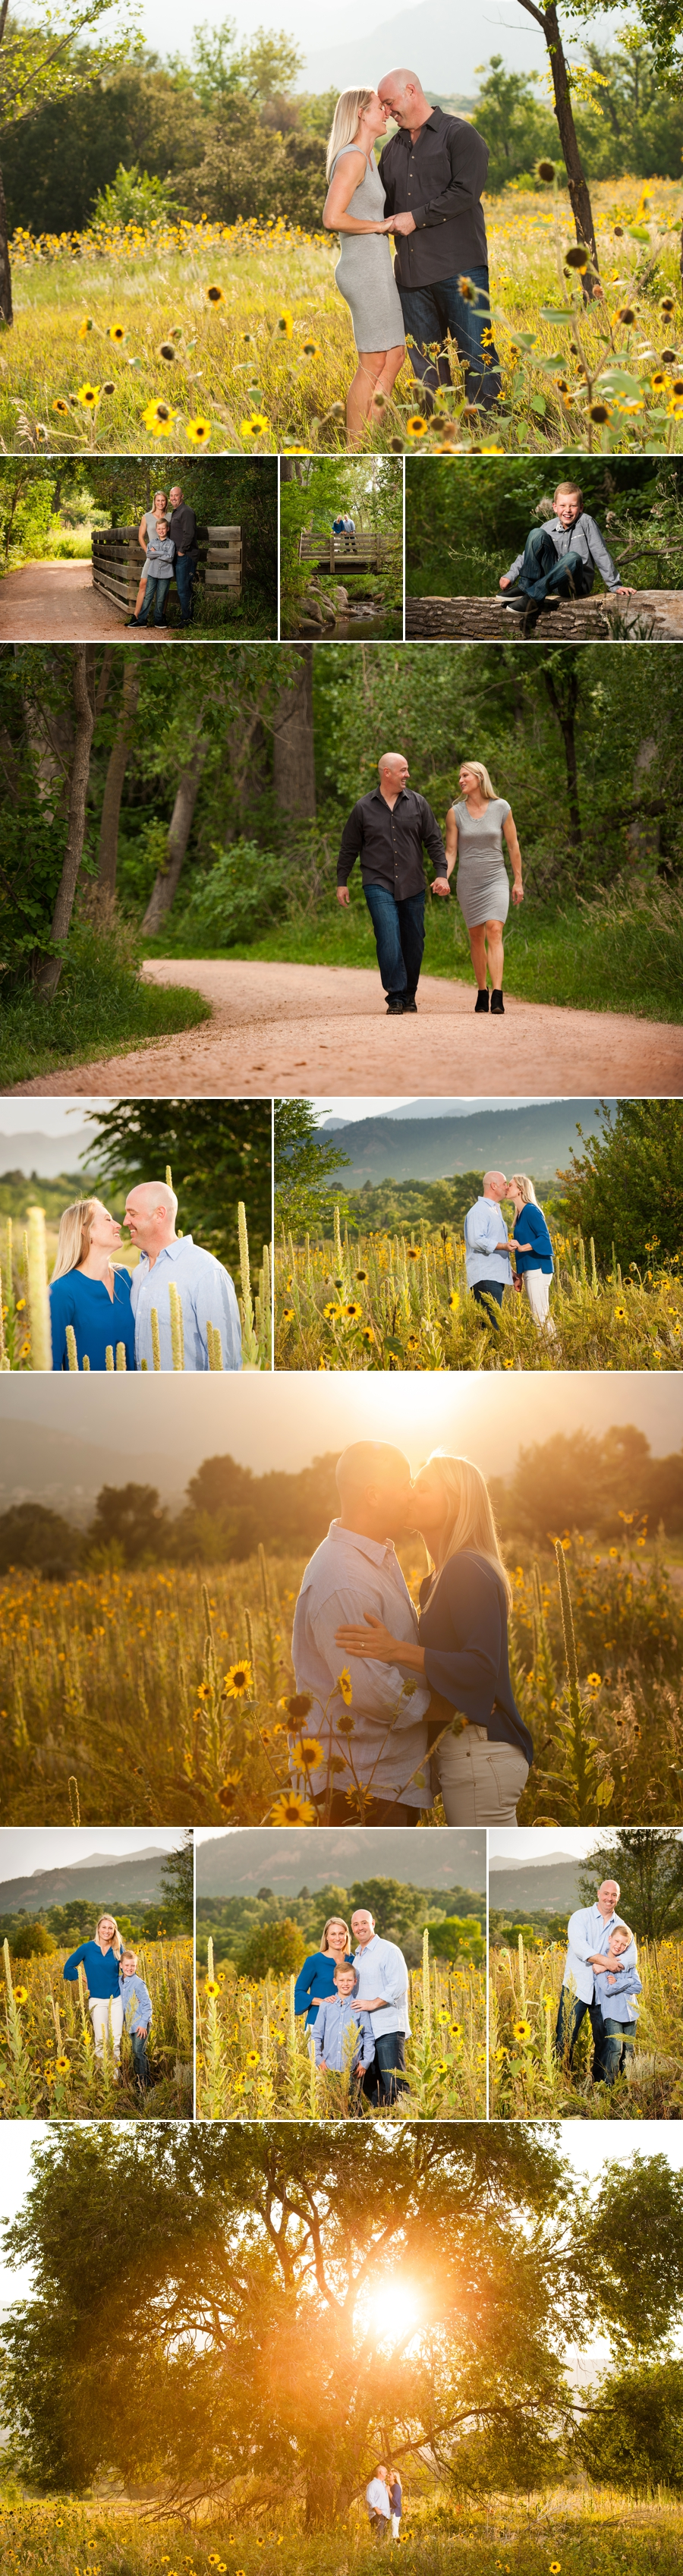 Colorado Springs engagement session photographer Jonathan Betz Photography